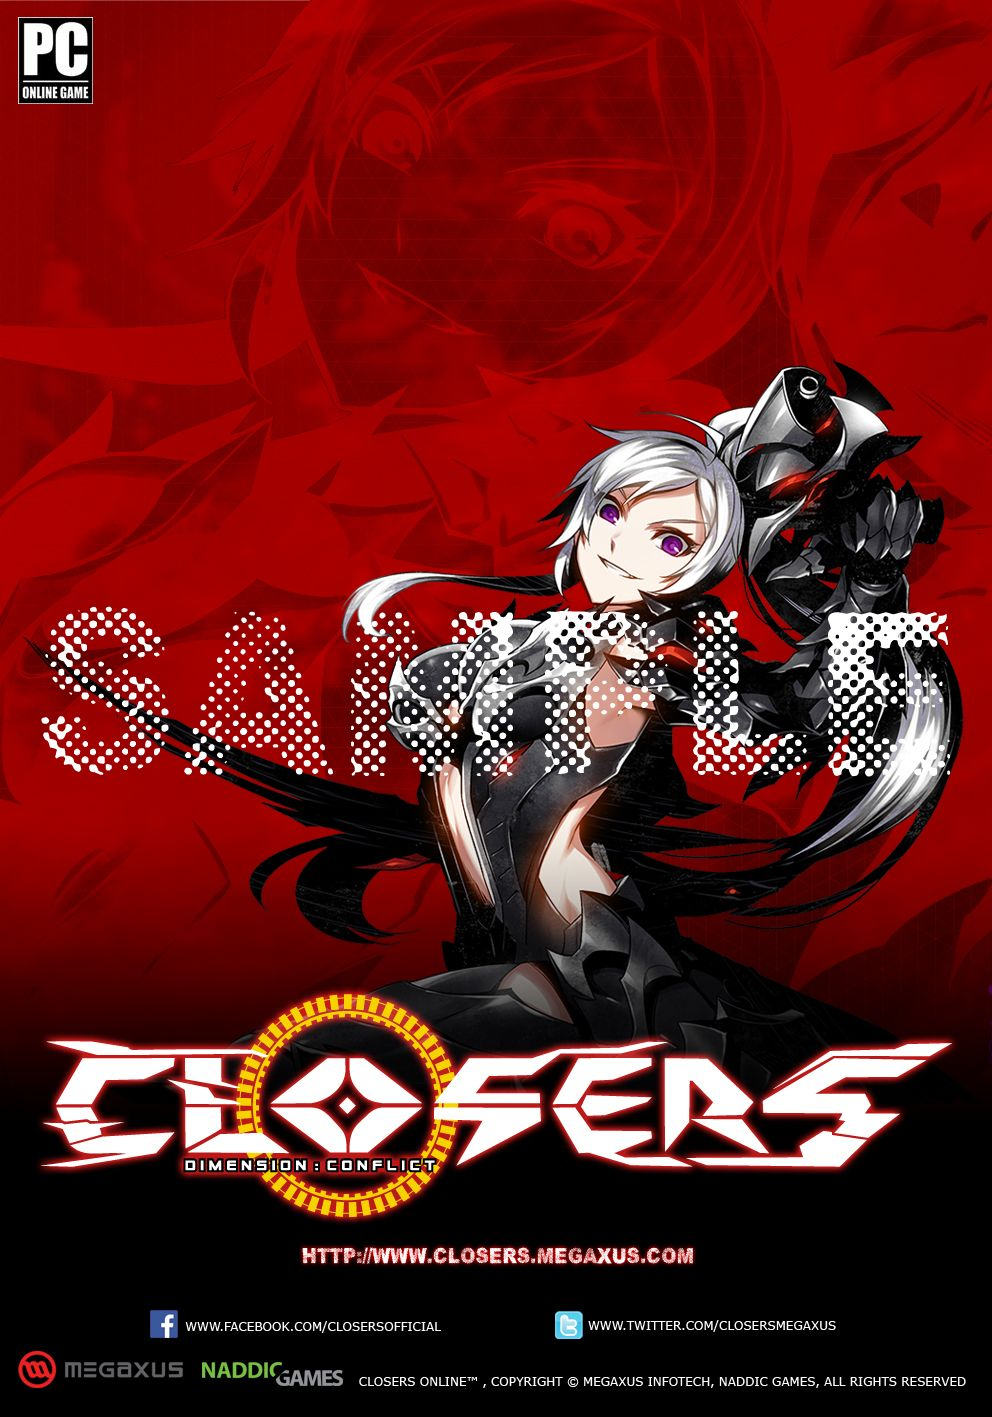 White Conference Normal Landscape Poster Size Character Yuri Normal Sample Indonesia Server Poster Ofness Edition Size X Character Yuri Normal Sample Indonesia Server Poster Splended Normal Poster Siz